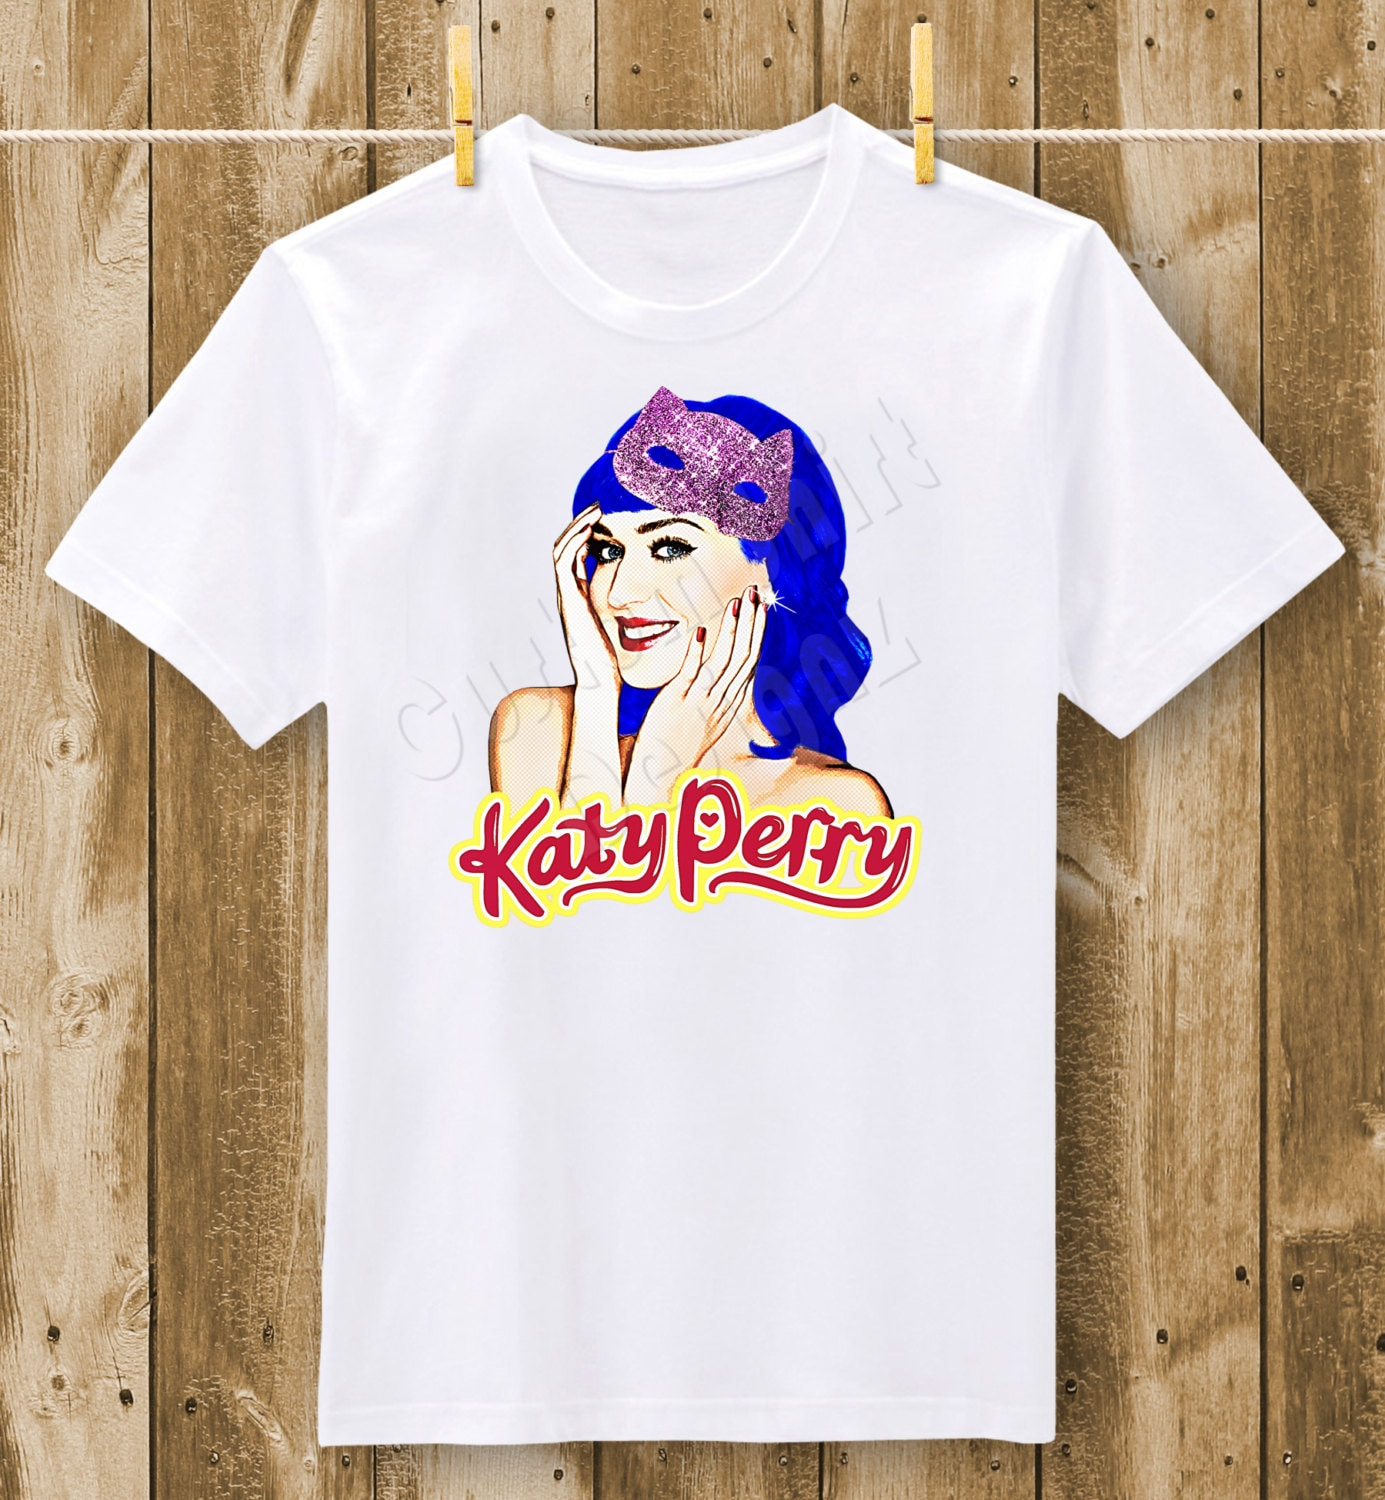 Katy Perry Pop Art Blue Hair T-Shirt or Bodysuit